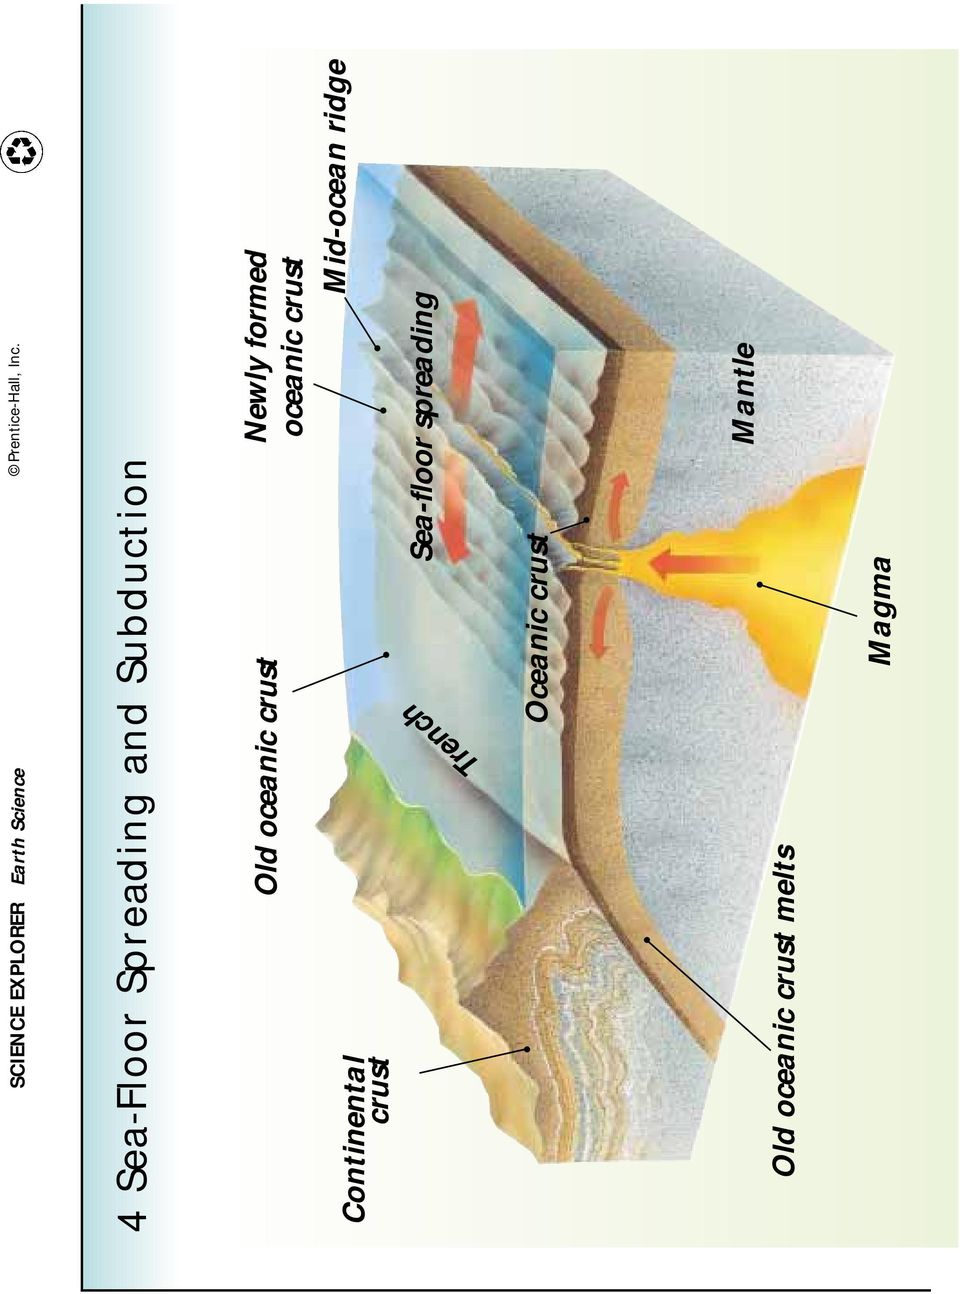 crust Sea-floor spreading Mid-ocean ridge Trench